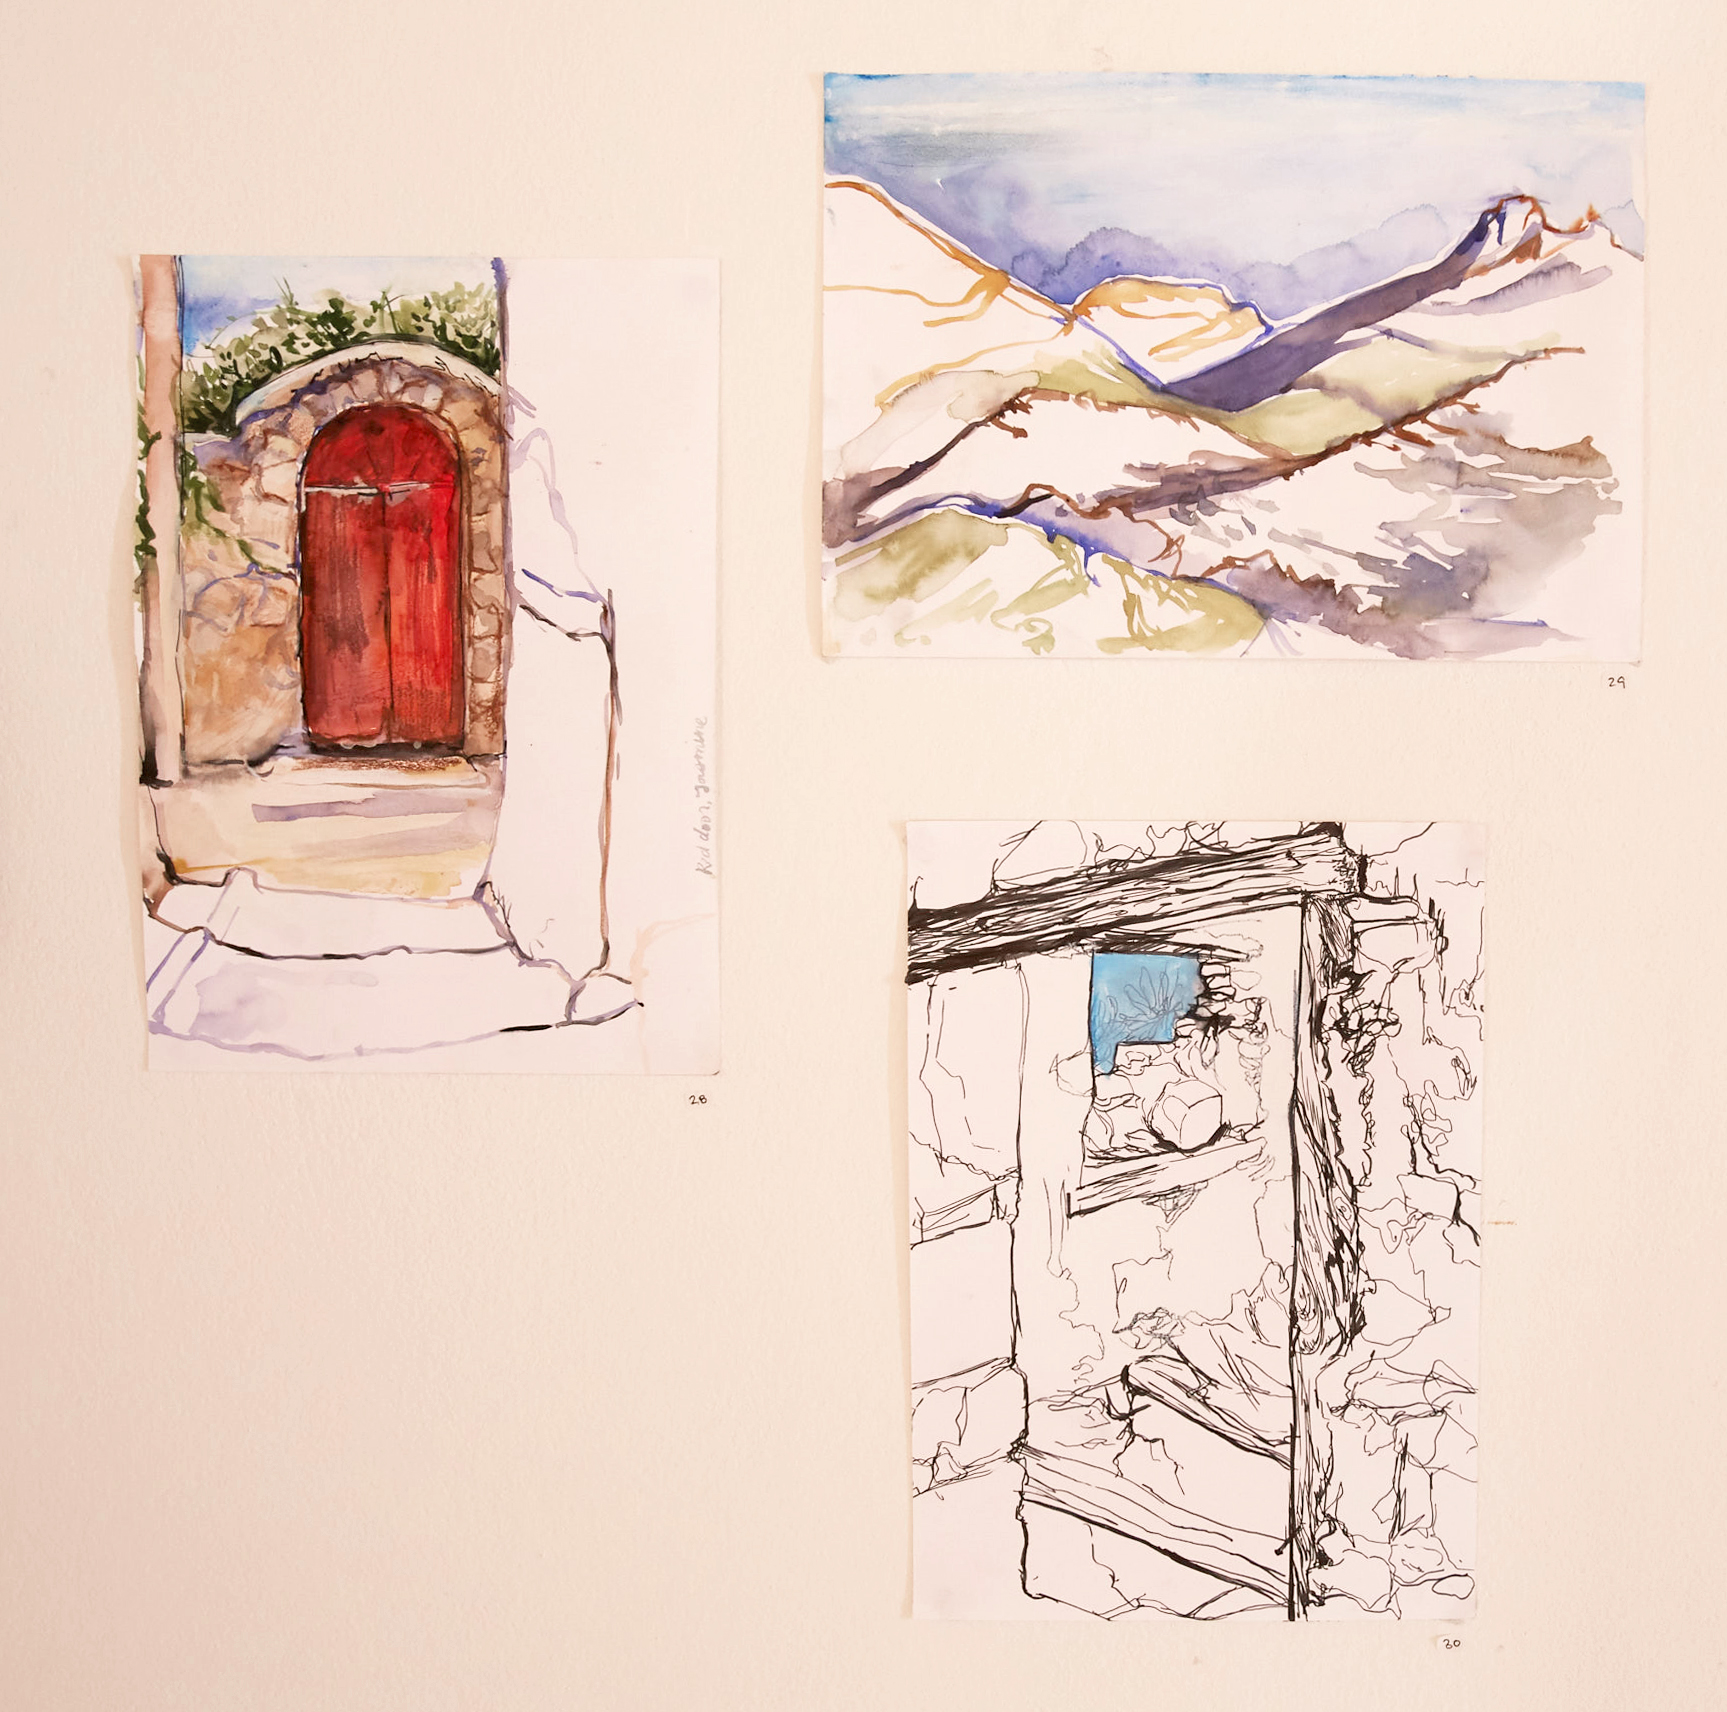 Agios Ioannis sketches, 2015